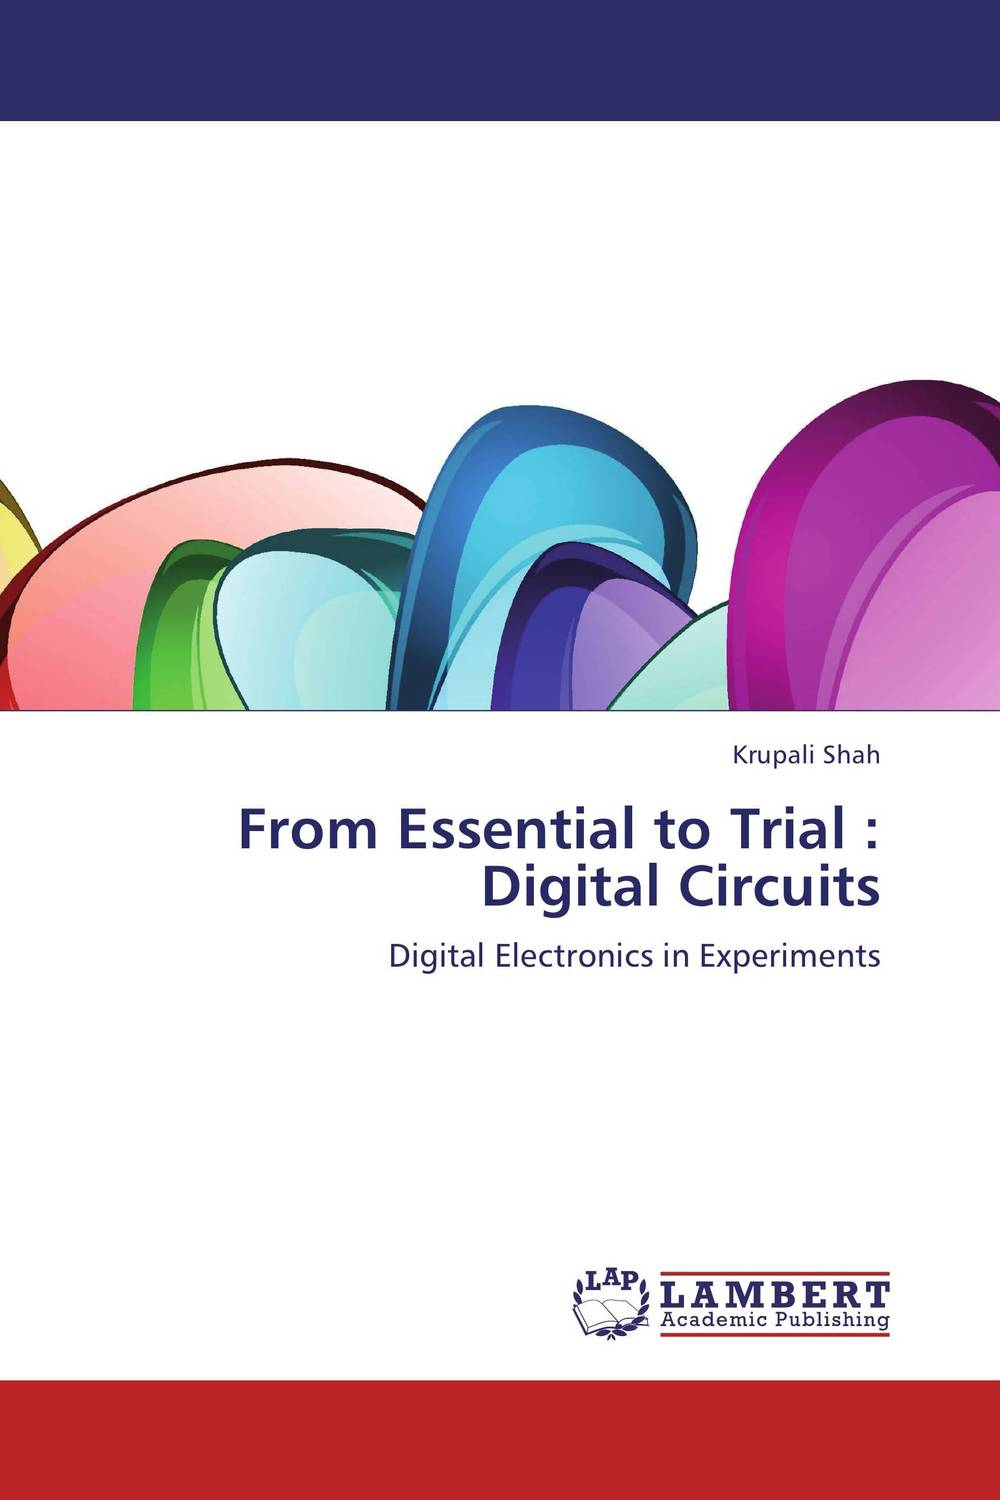 From Essential to Trial : Digital Circuits